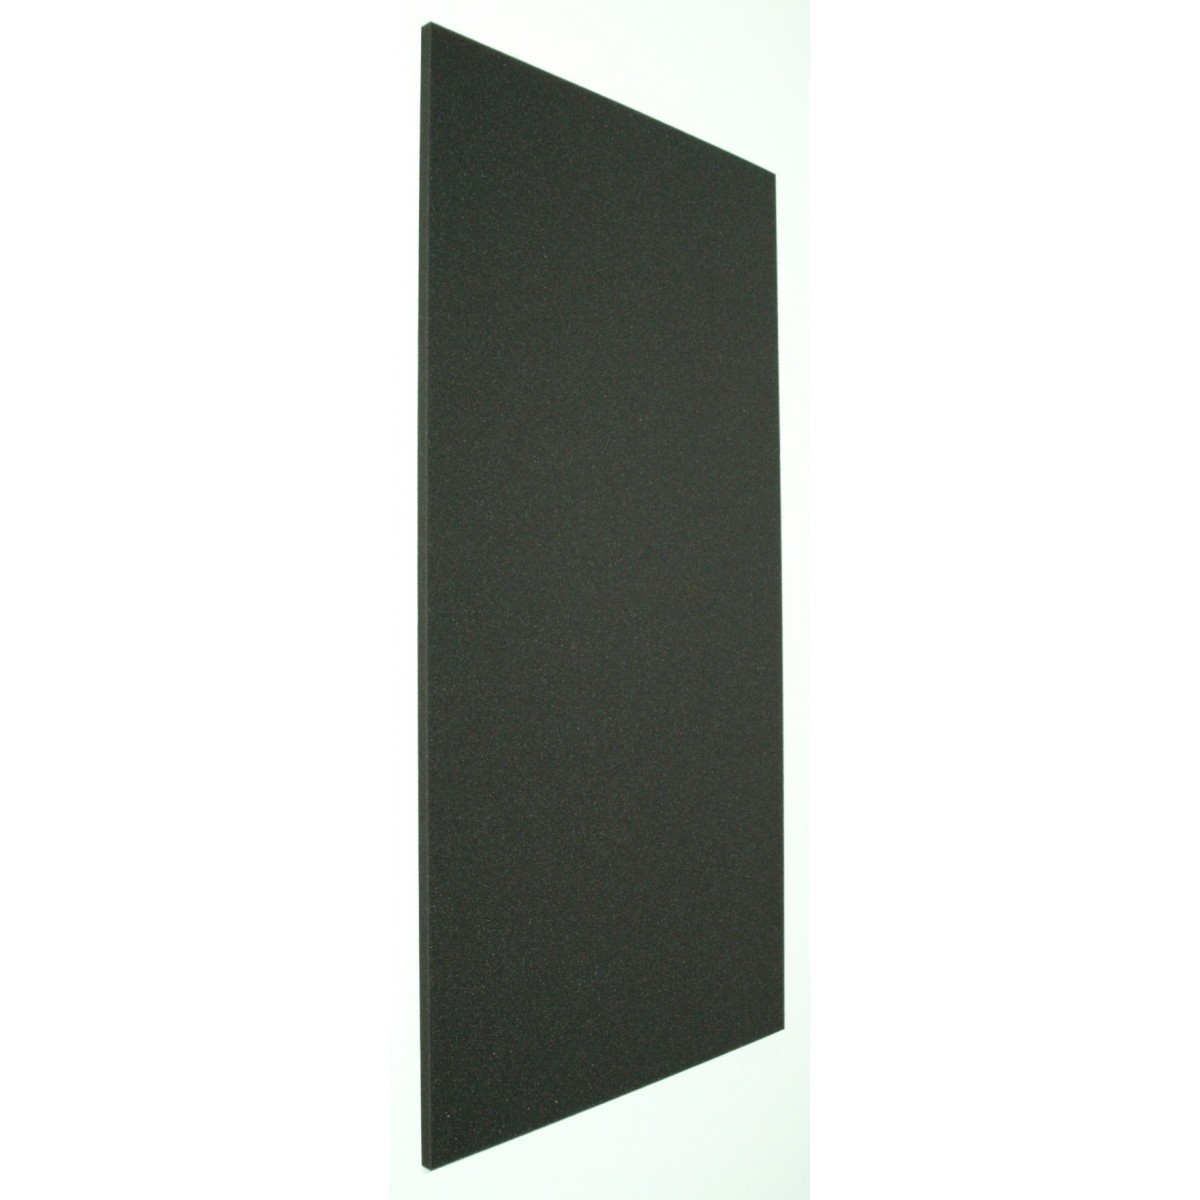 EliAcoustic Regular Panel 120.2 First. Panel Acustico espuma fonoabsorbente